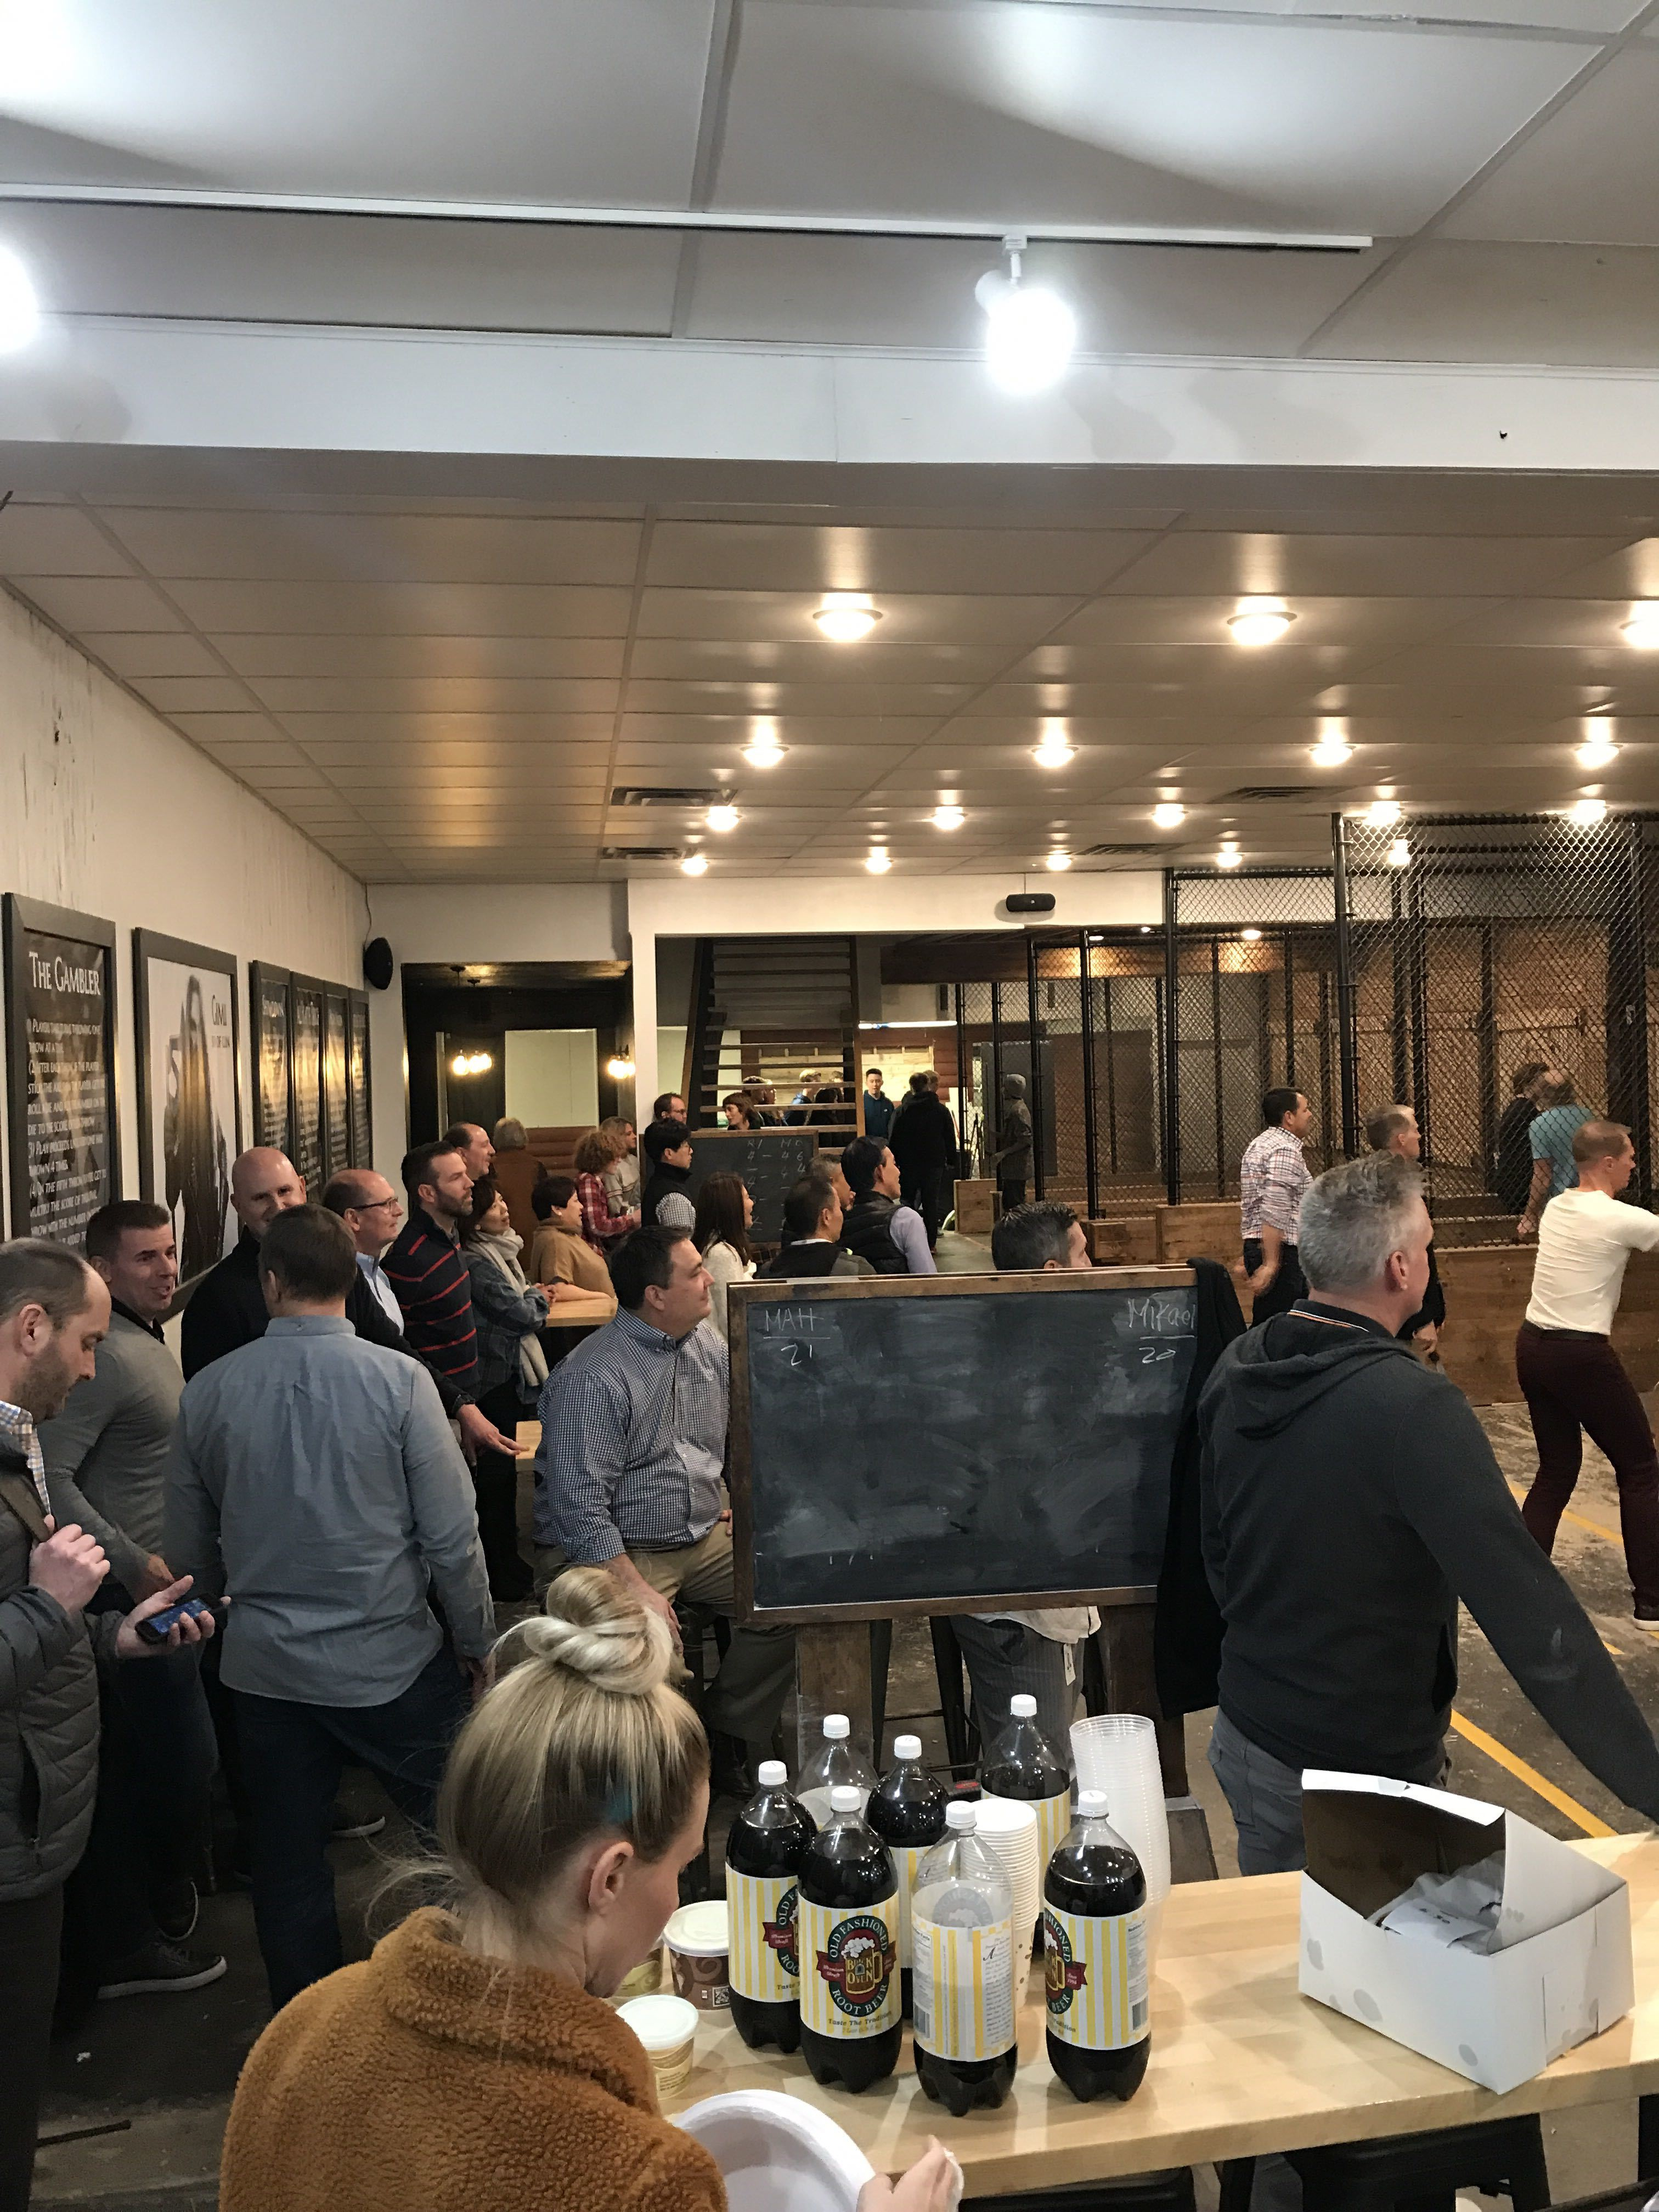 a business group enjoys food and axe throwing during a corporate event at Heber Hatchets